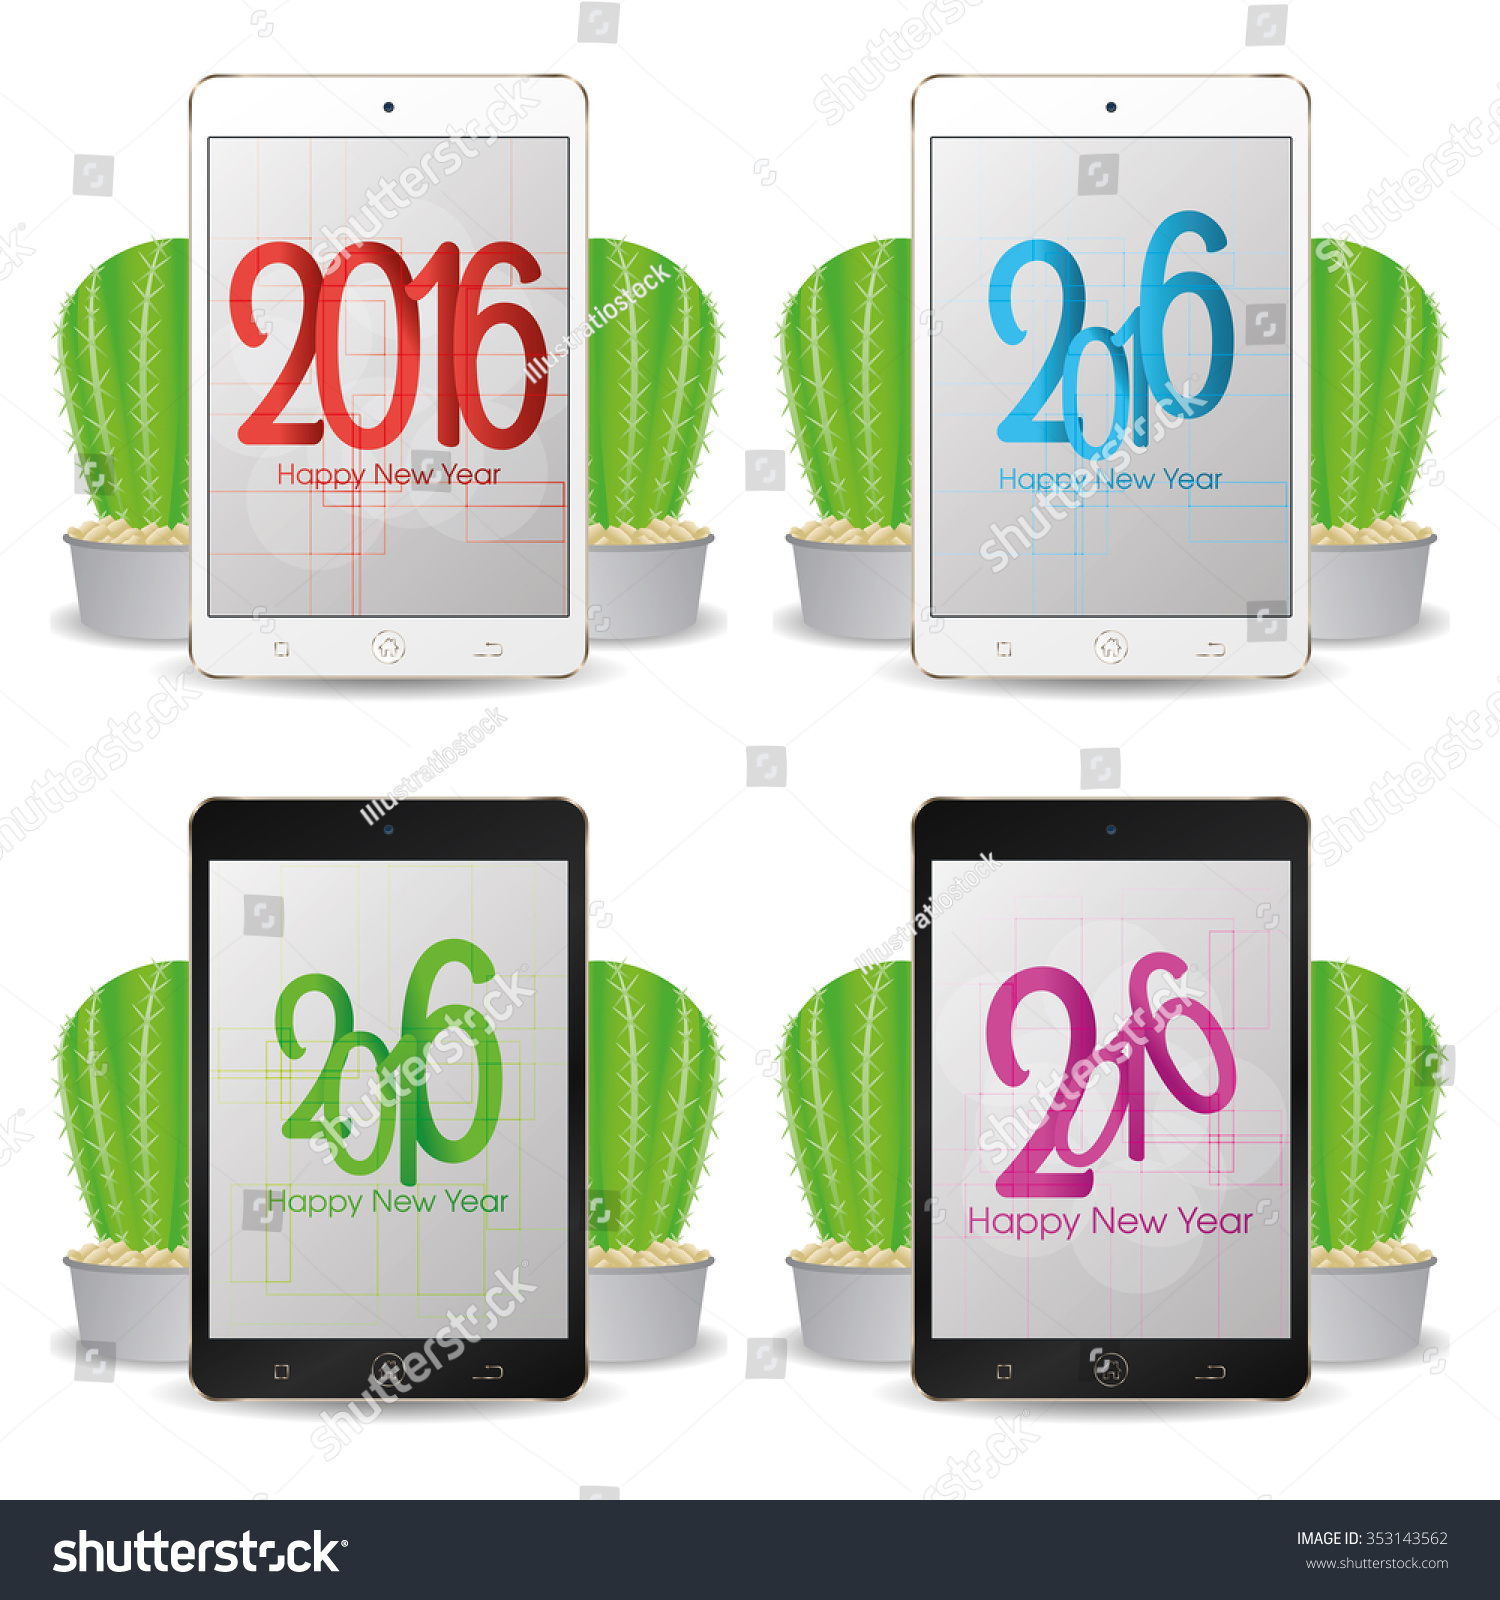 Set of cellphones with new year screensavers